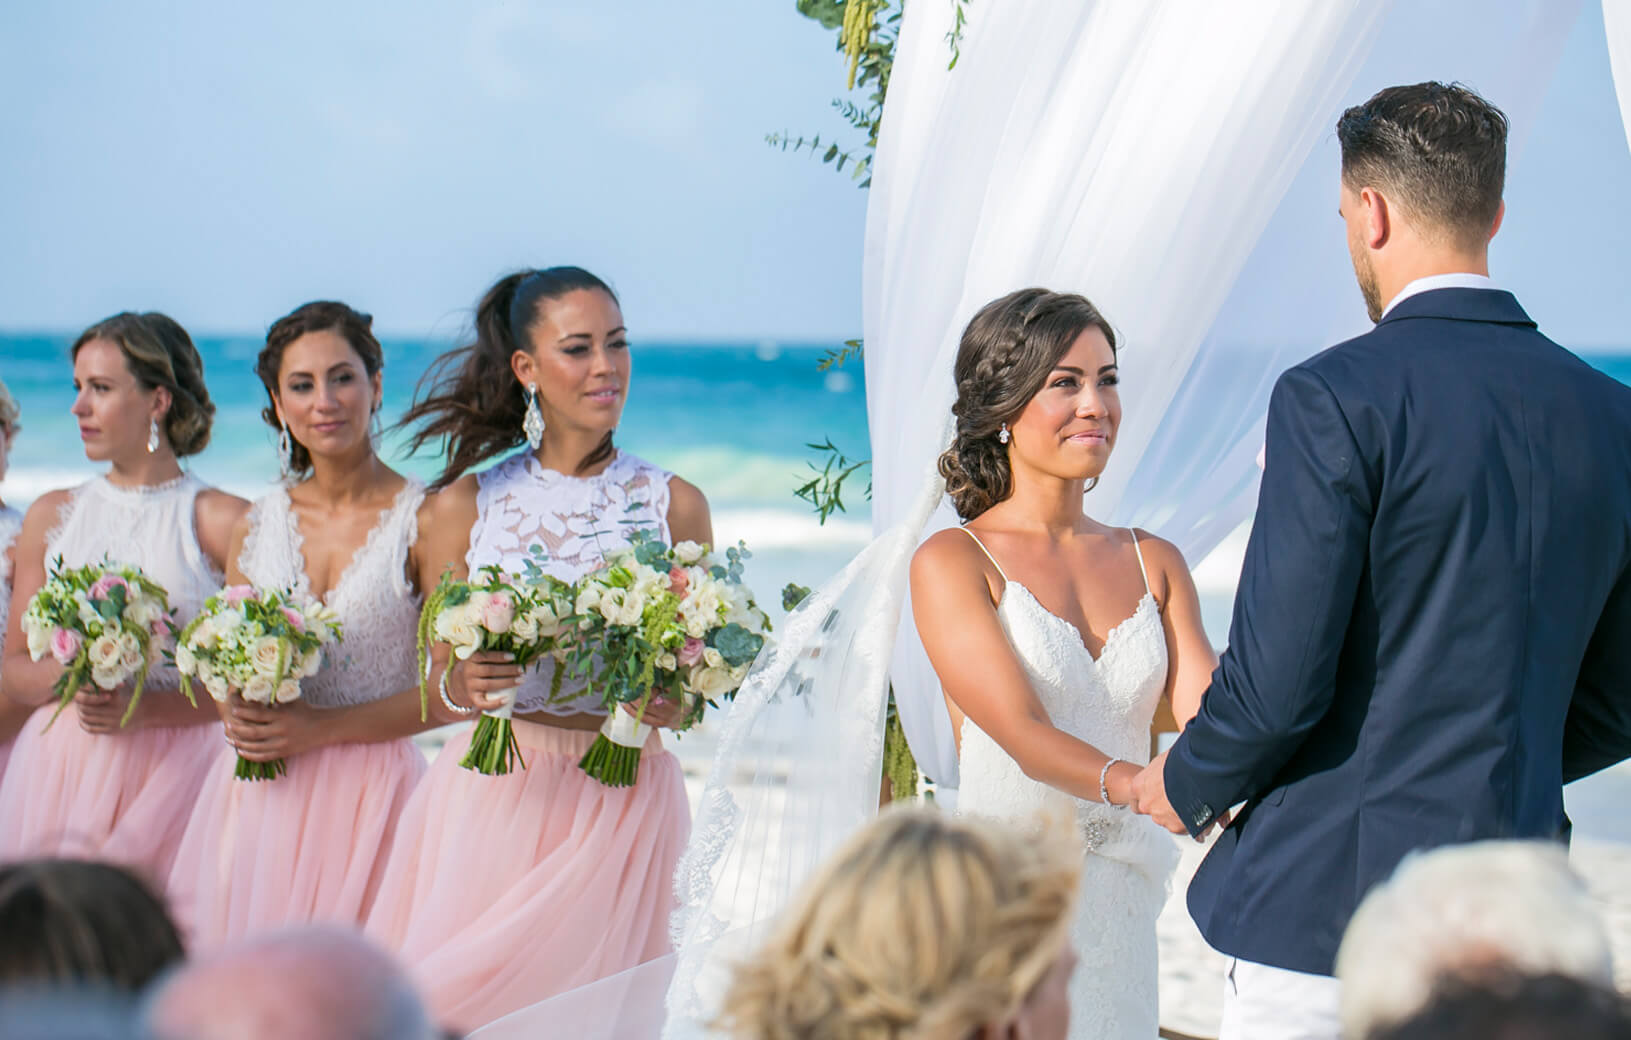 planning wedding videography riviera maya - Wedding Videography